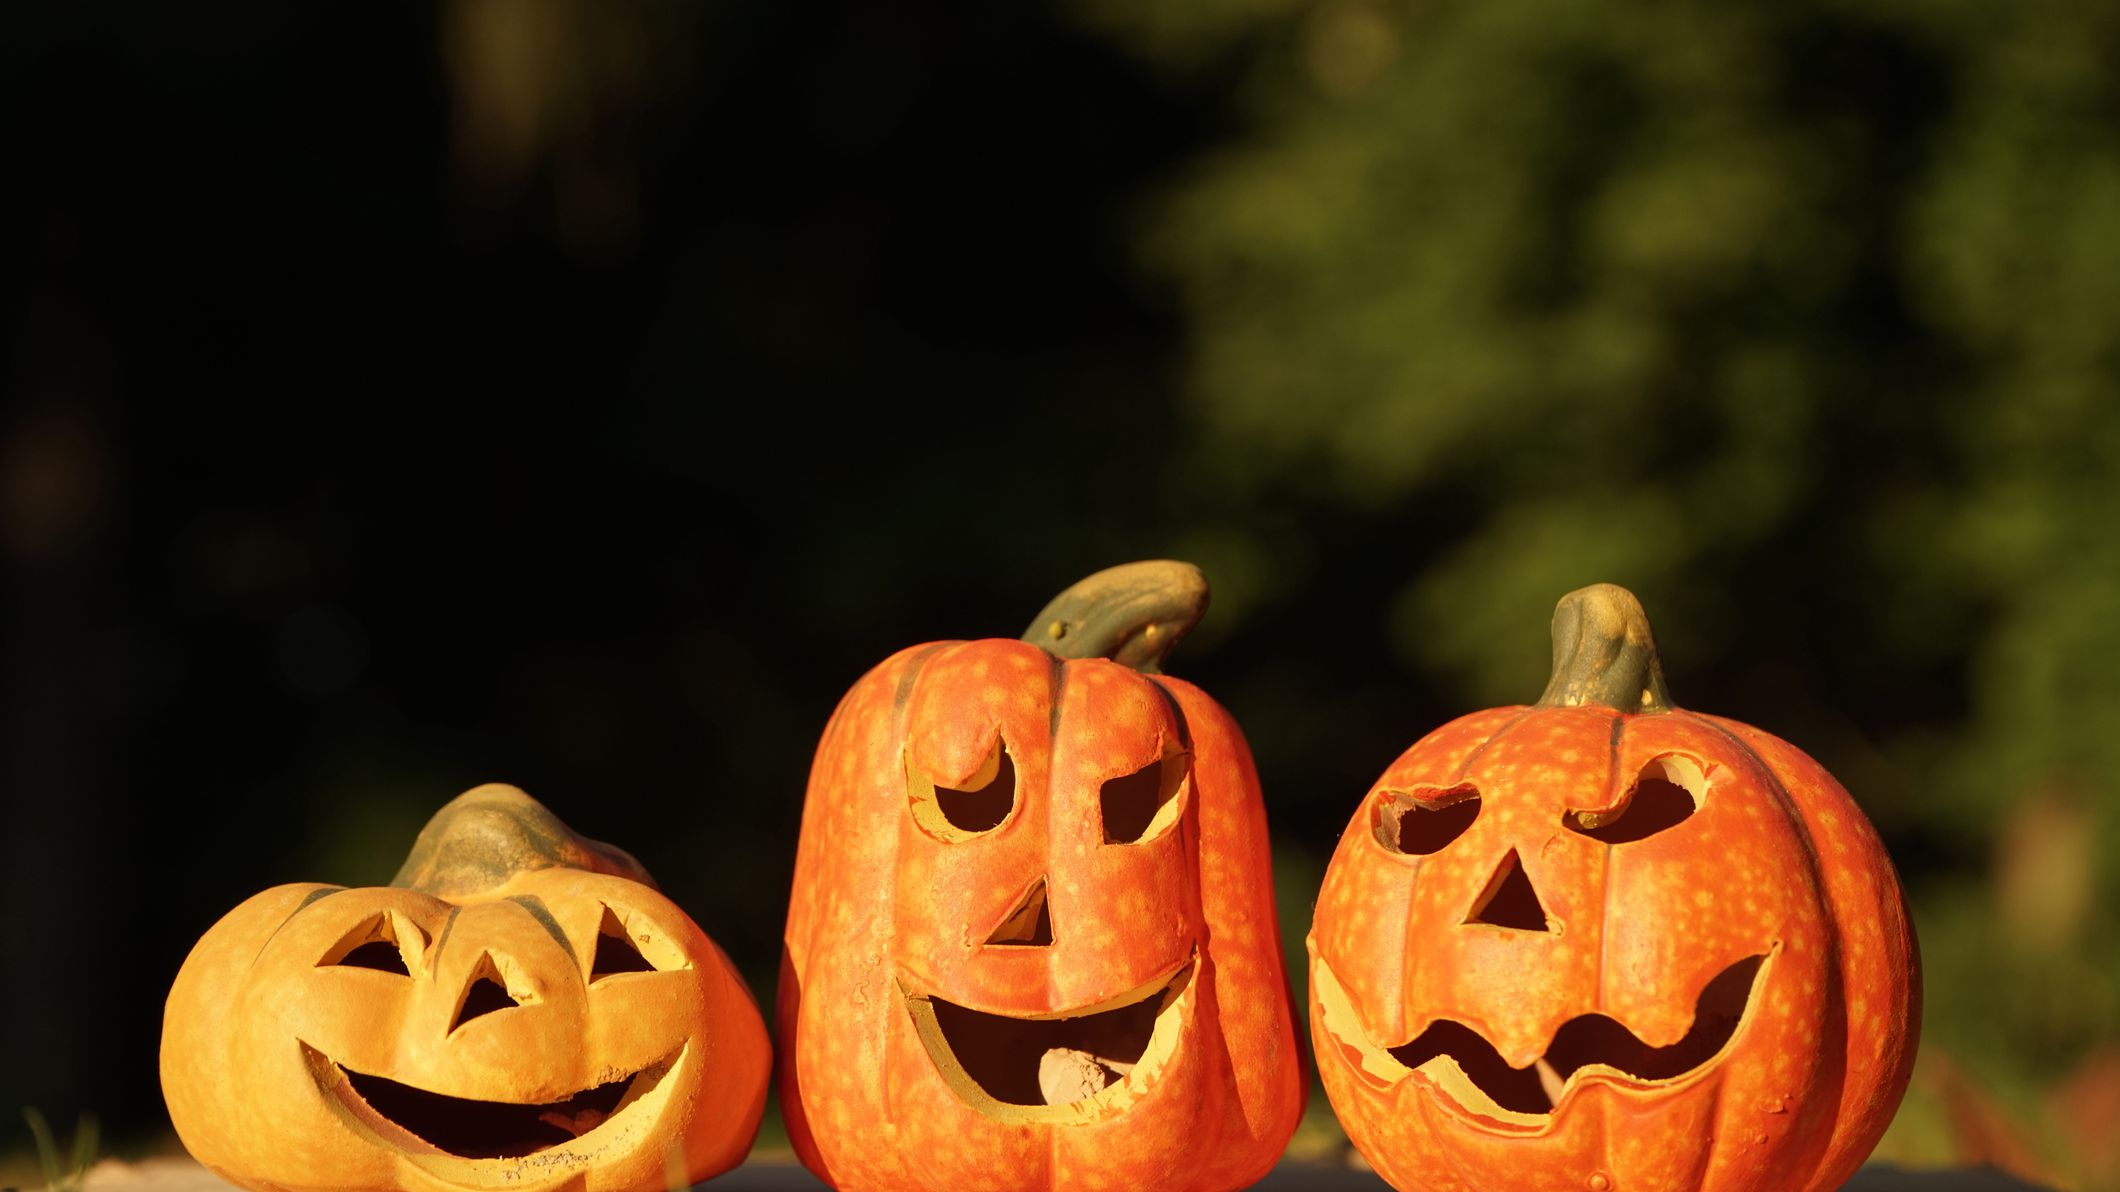 Safety Tips For Carving Pumpkins And Displaying Them